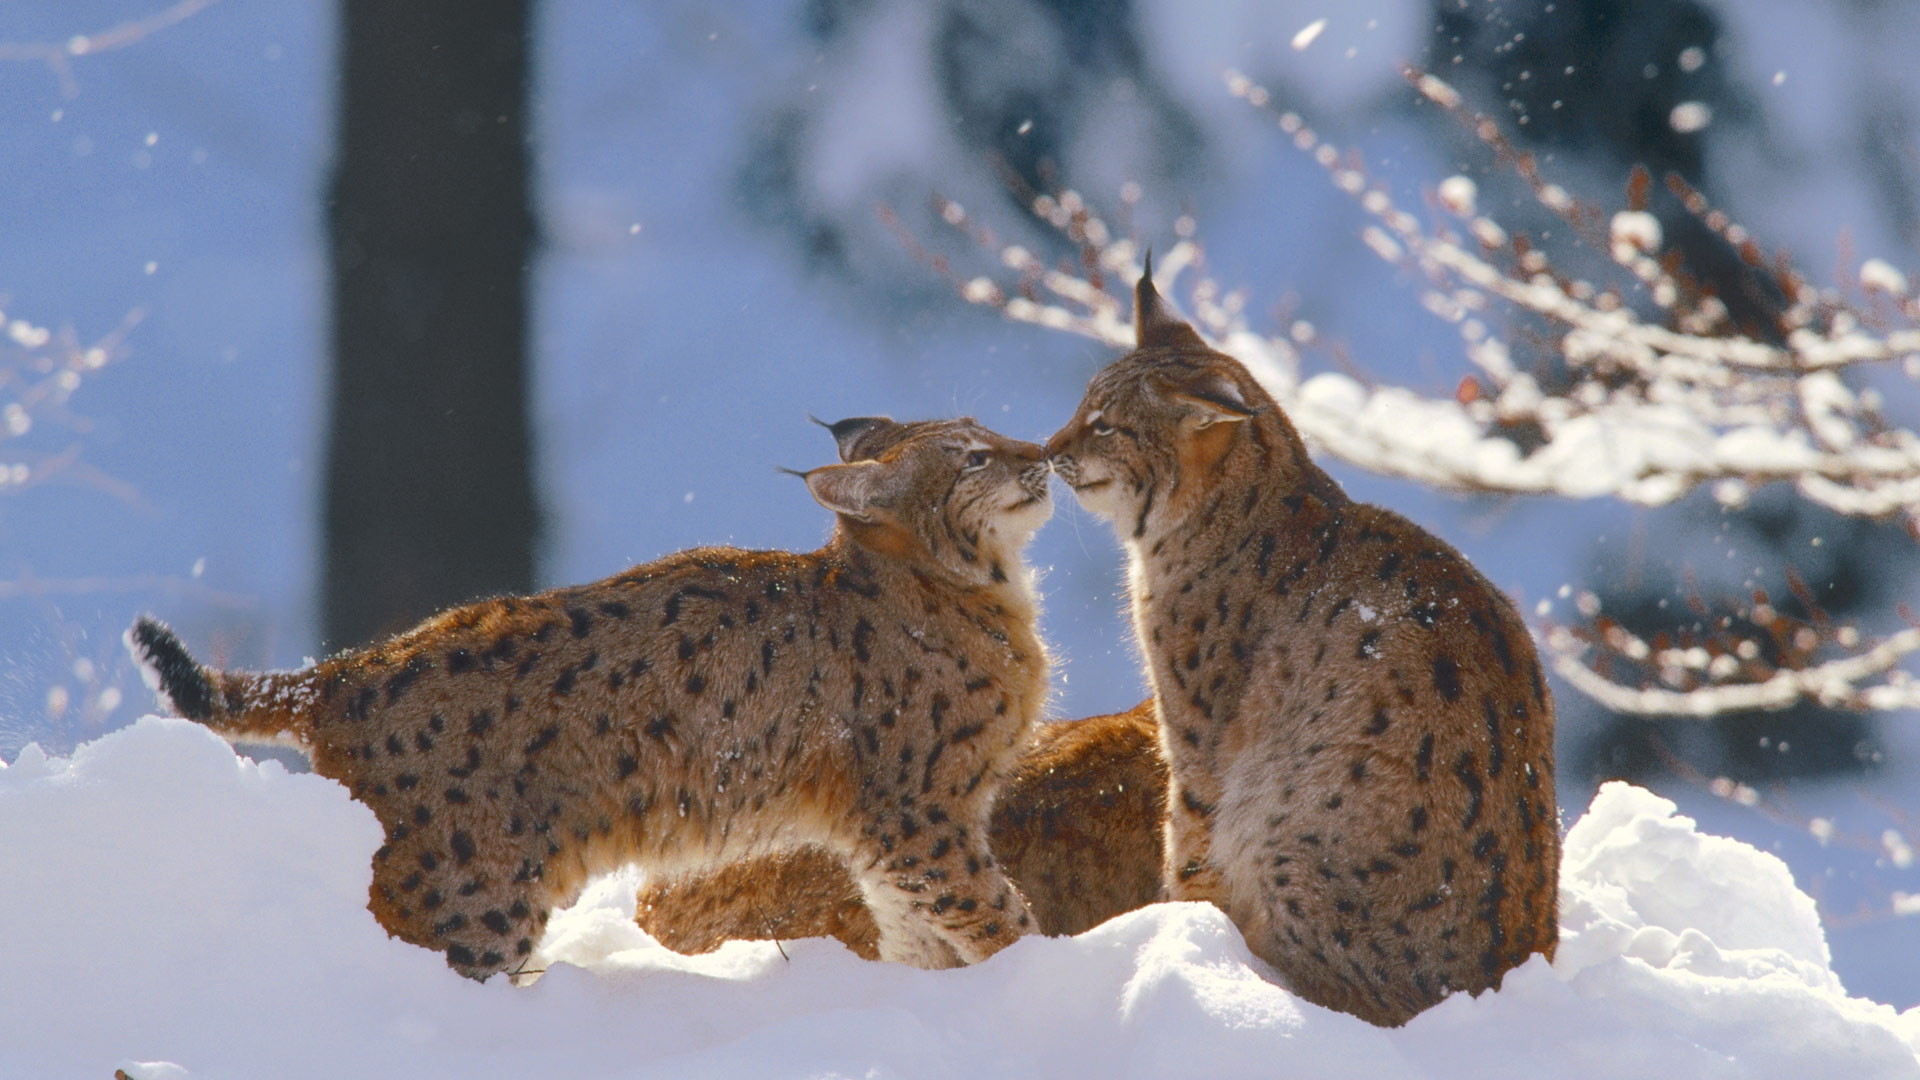 Eurasian lynx in the Bavarian Forest National Park, Germany (© Konrad Wothe/Minden Pictures)